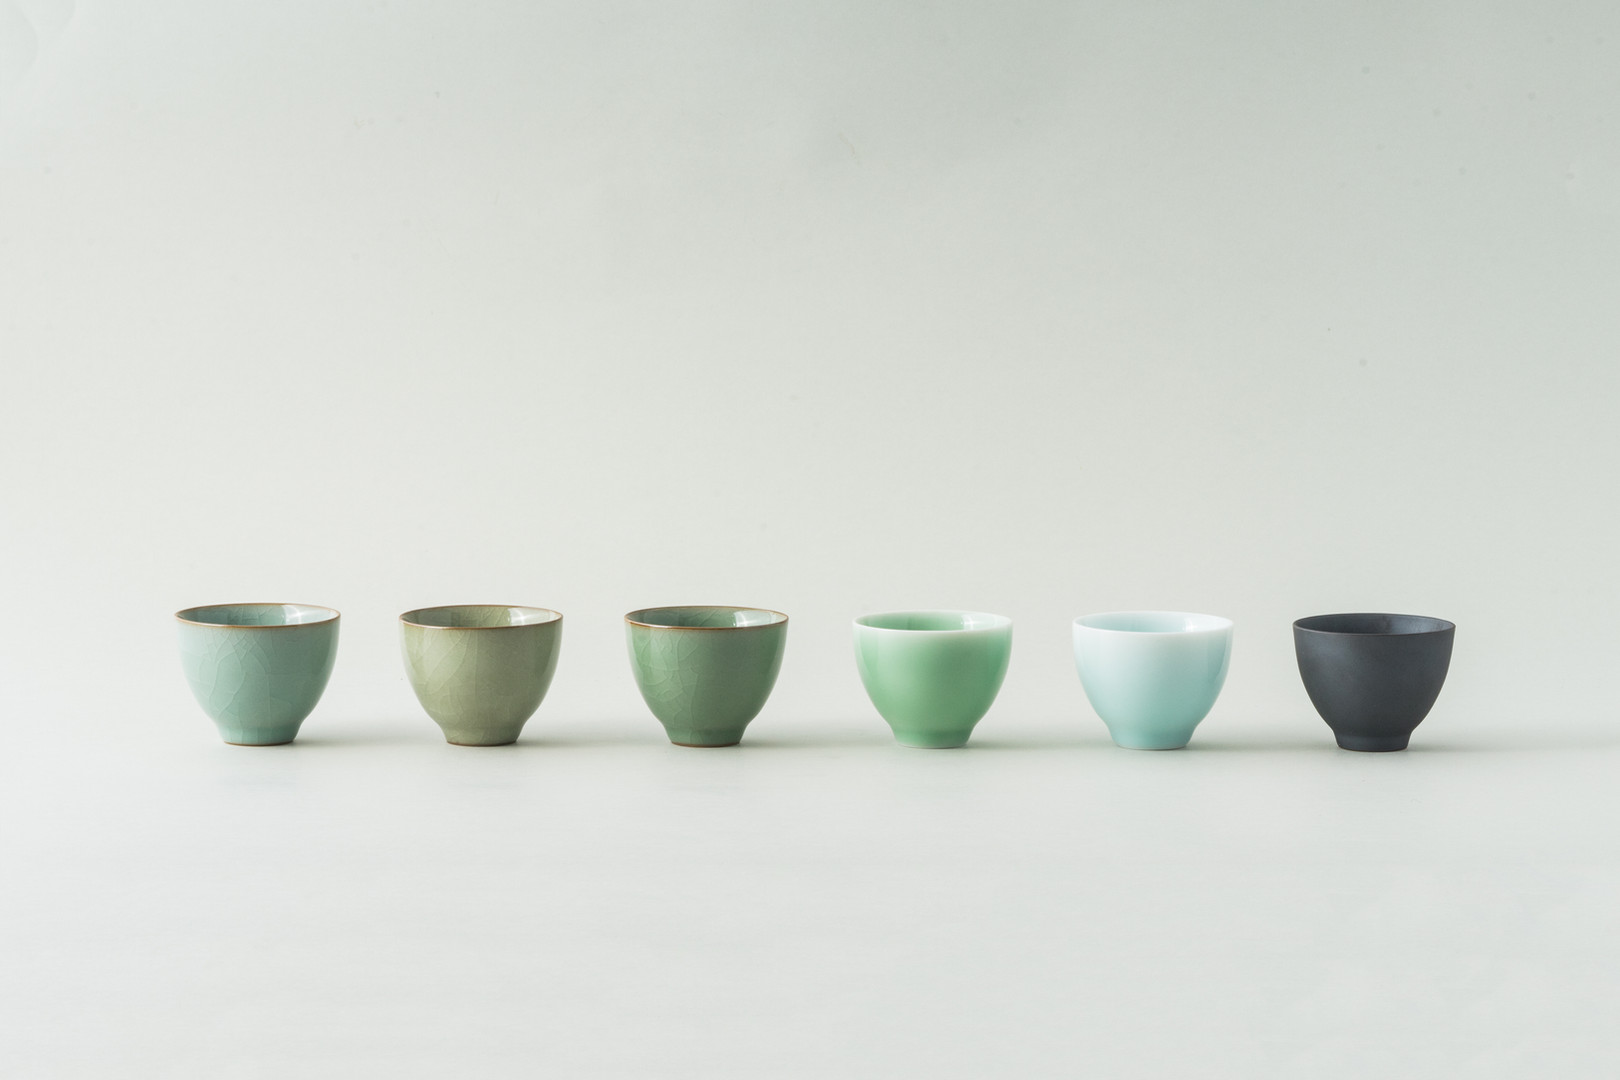 Tiny off the hump pottery cups